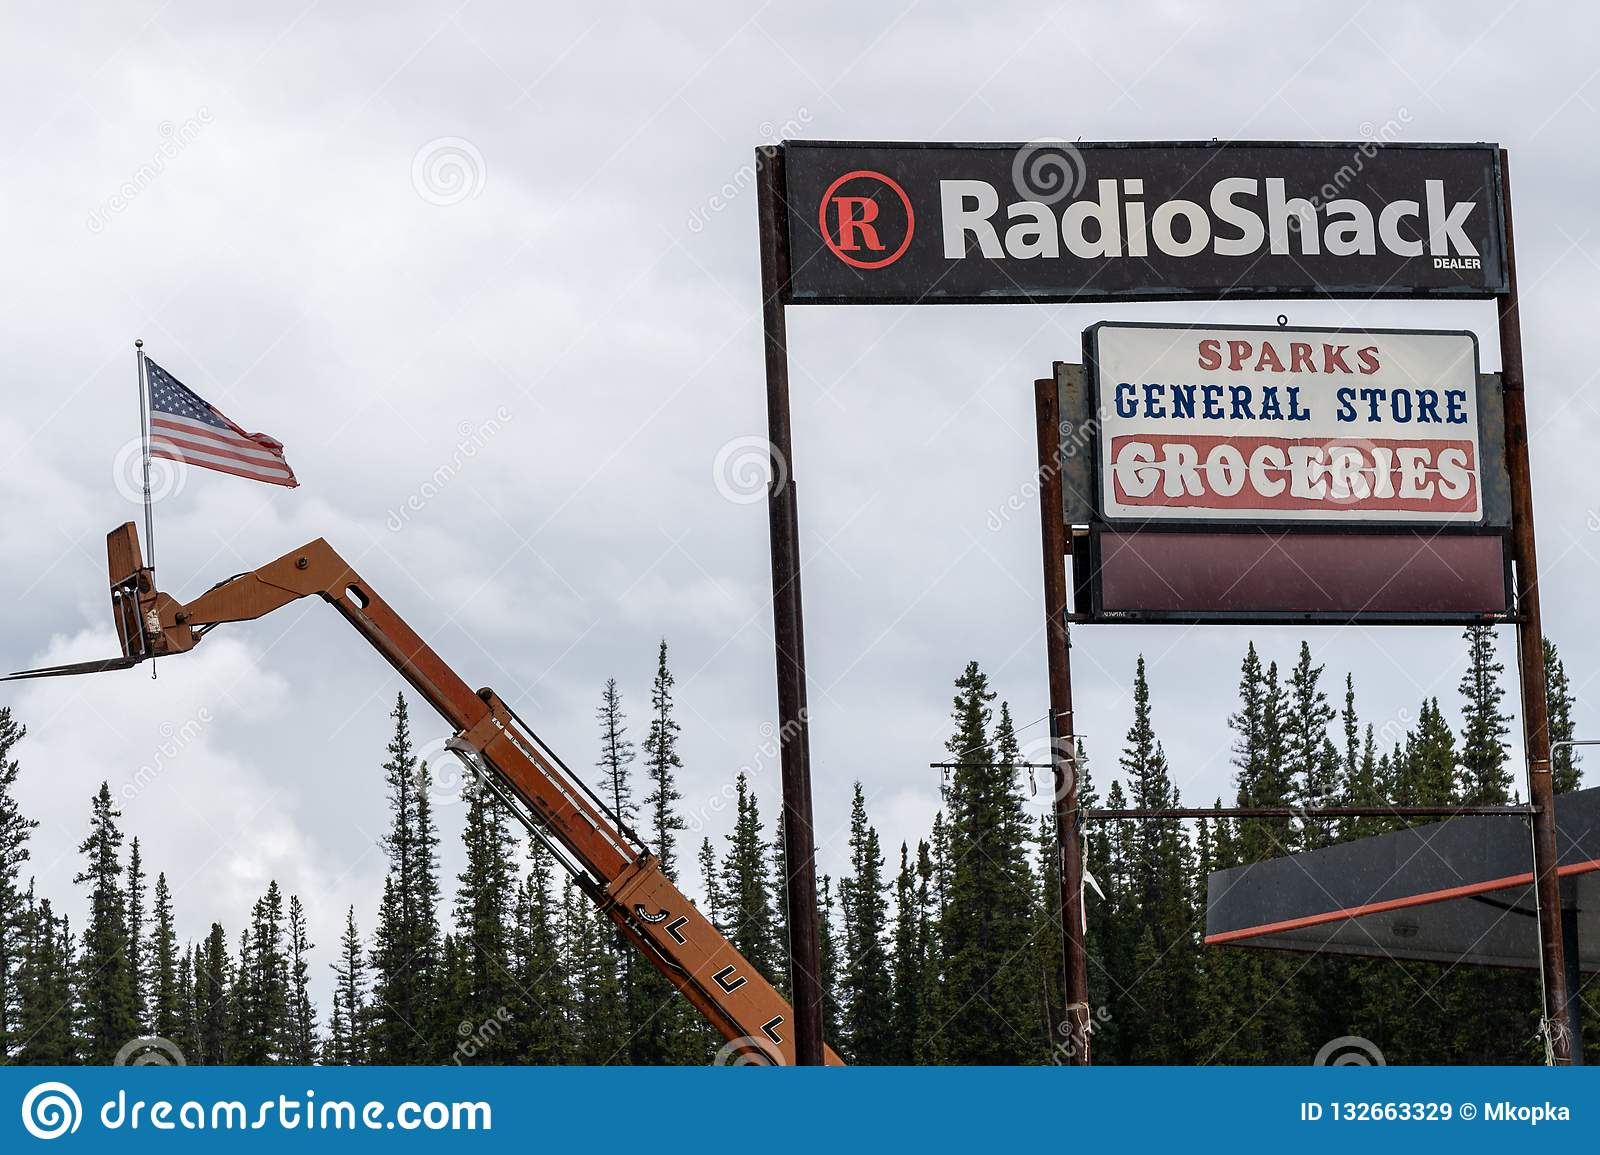 Sign for a Radio Shack store